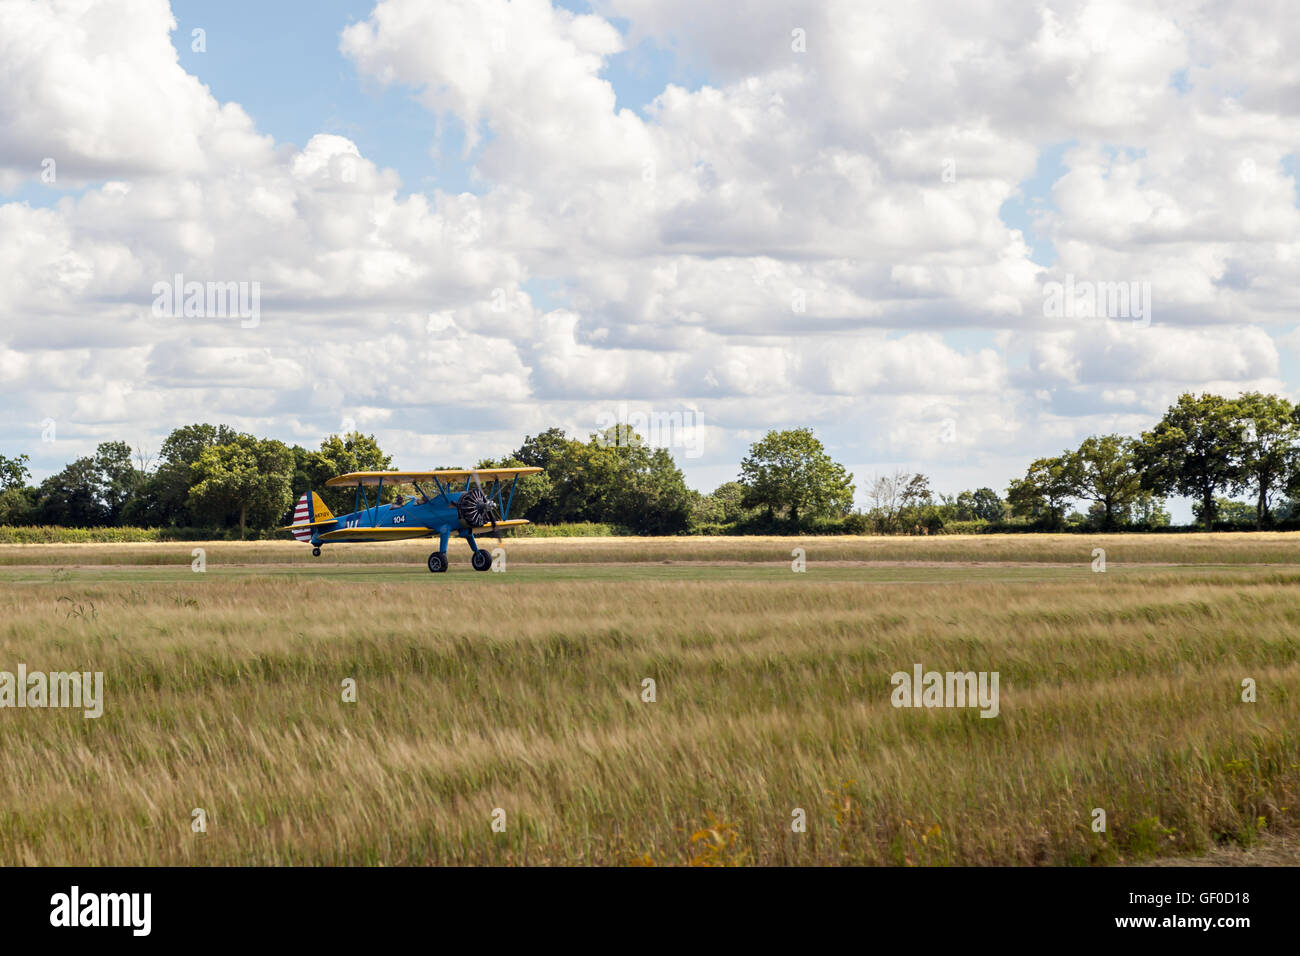 A vintage bi-plane taking off from grass runway - Stock Image